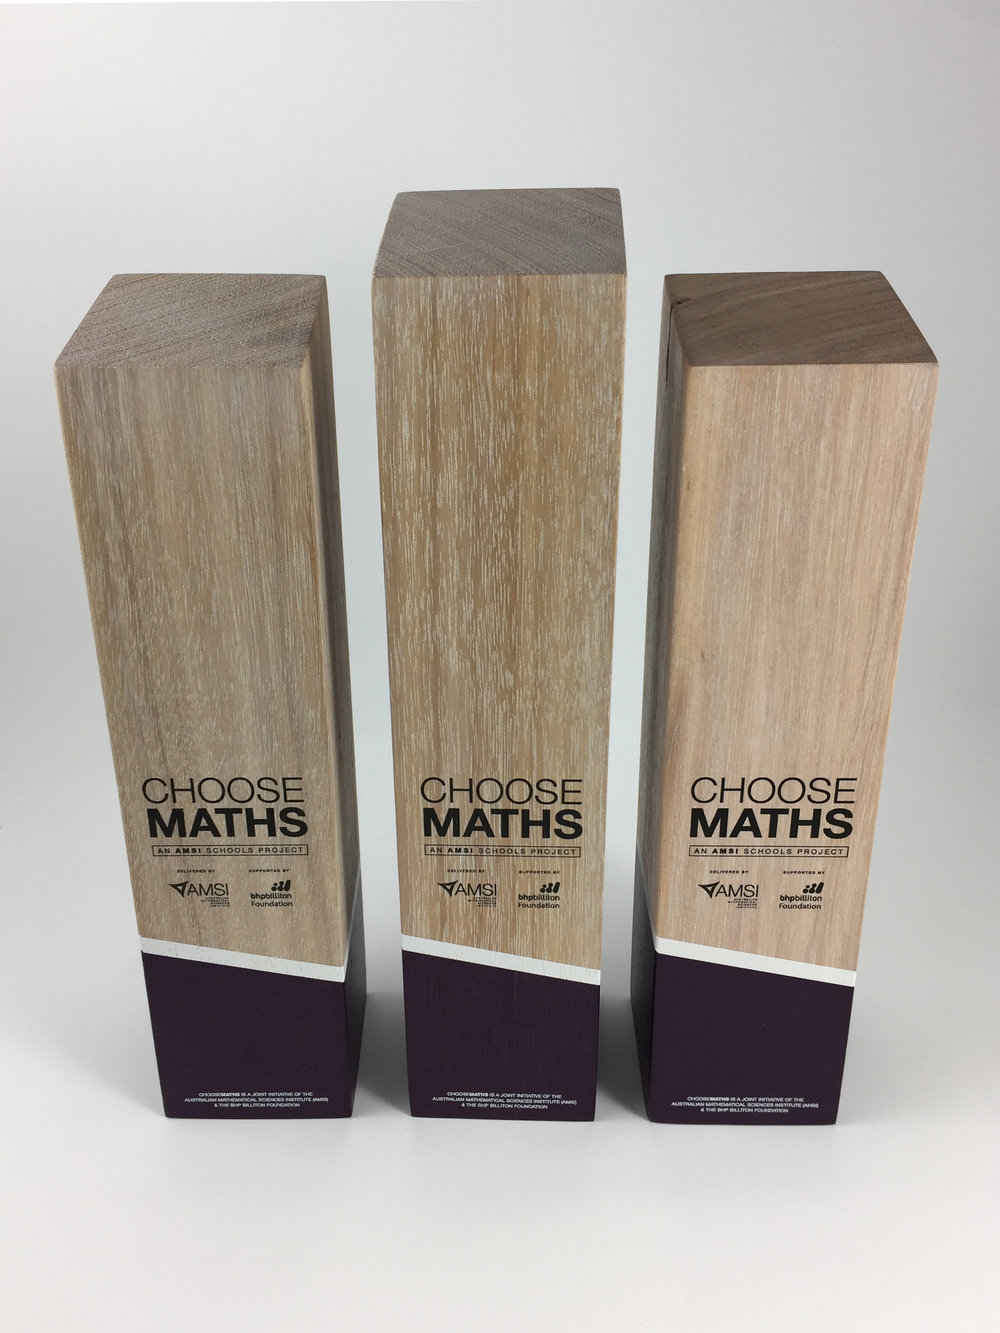 choose-maths-eco-timber-trophy-awards-01.jpg